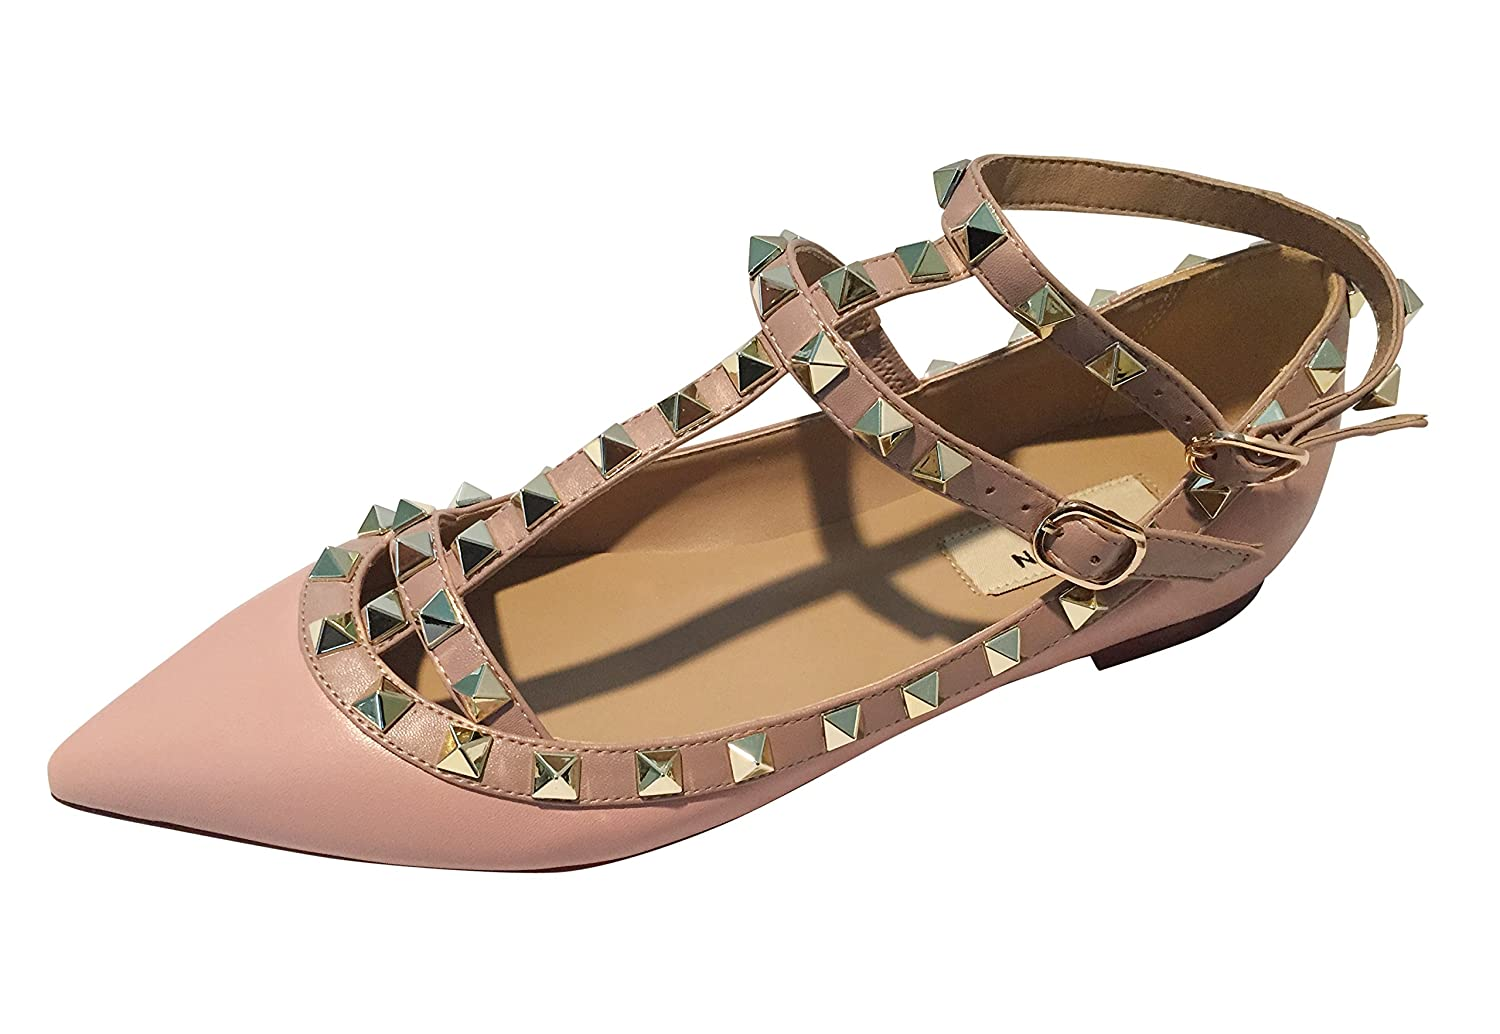 Kaitlyn Pan Studded Strappy Ballerina Leather Flats B01EH0KUS0 8.5US/ 39EU/ 40CN|Pastel Pink Matte/Nude Trim/Gold Studs